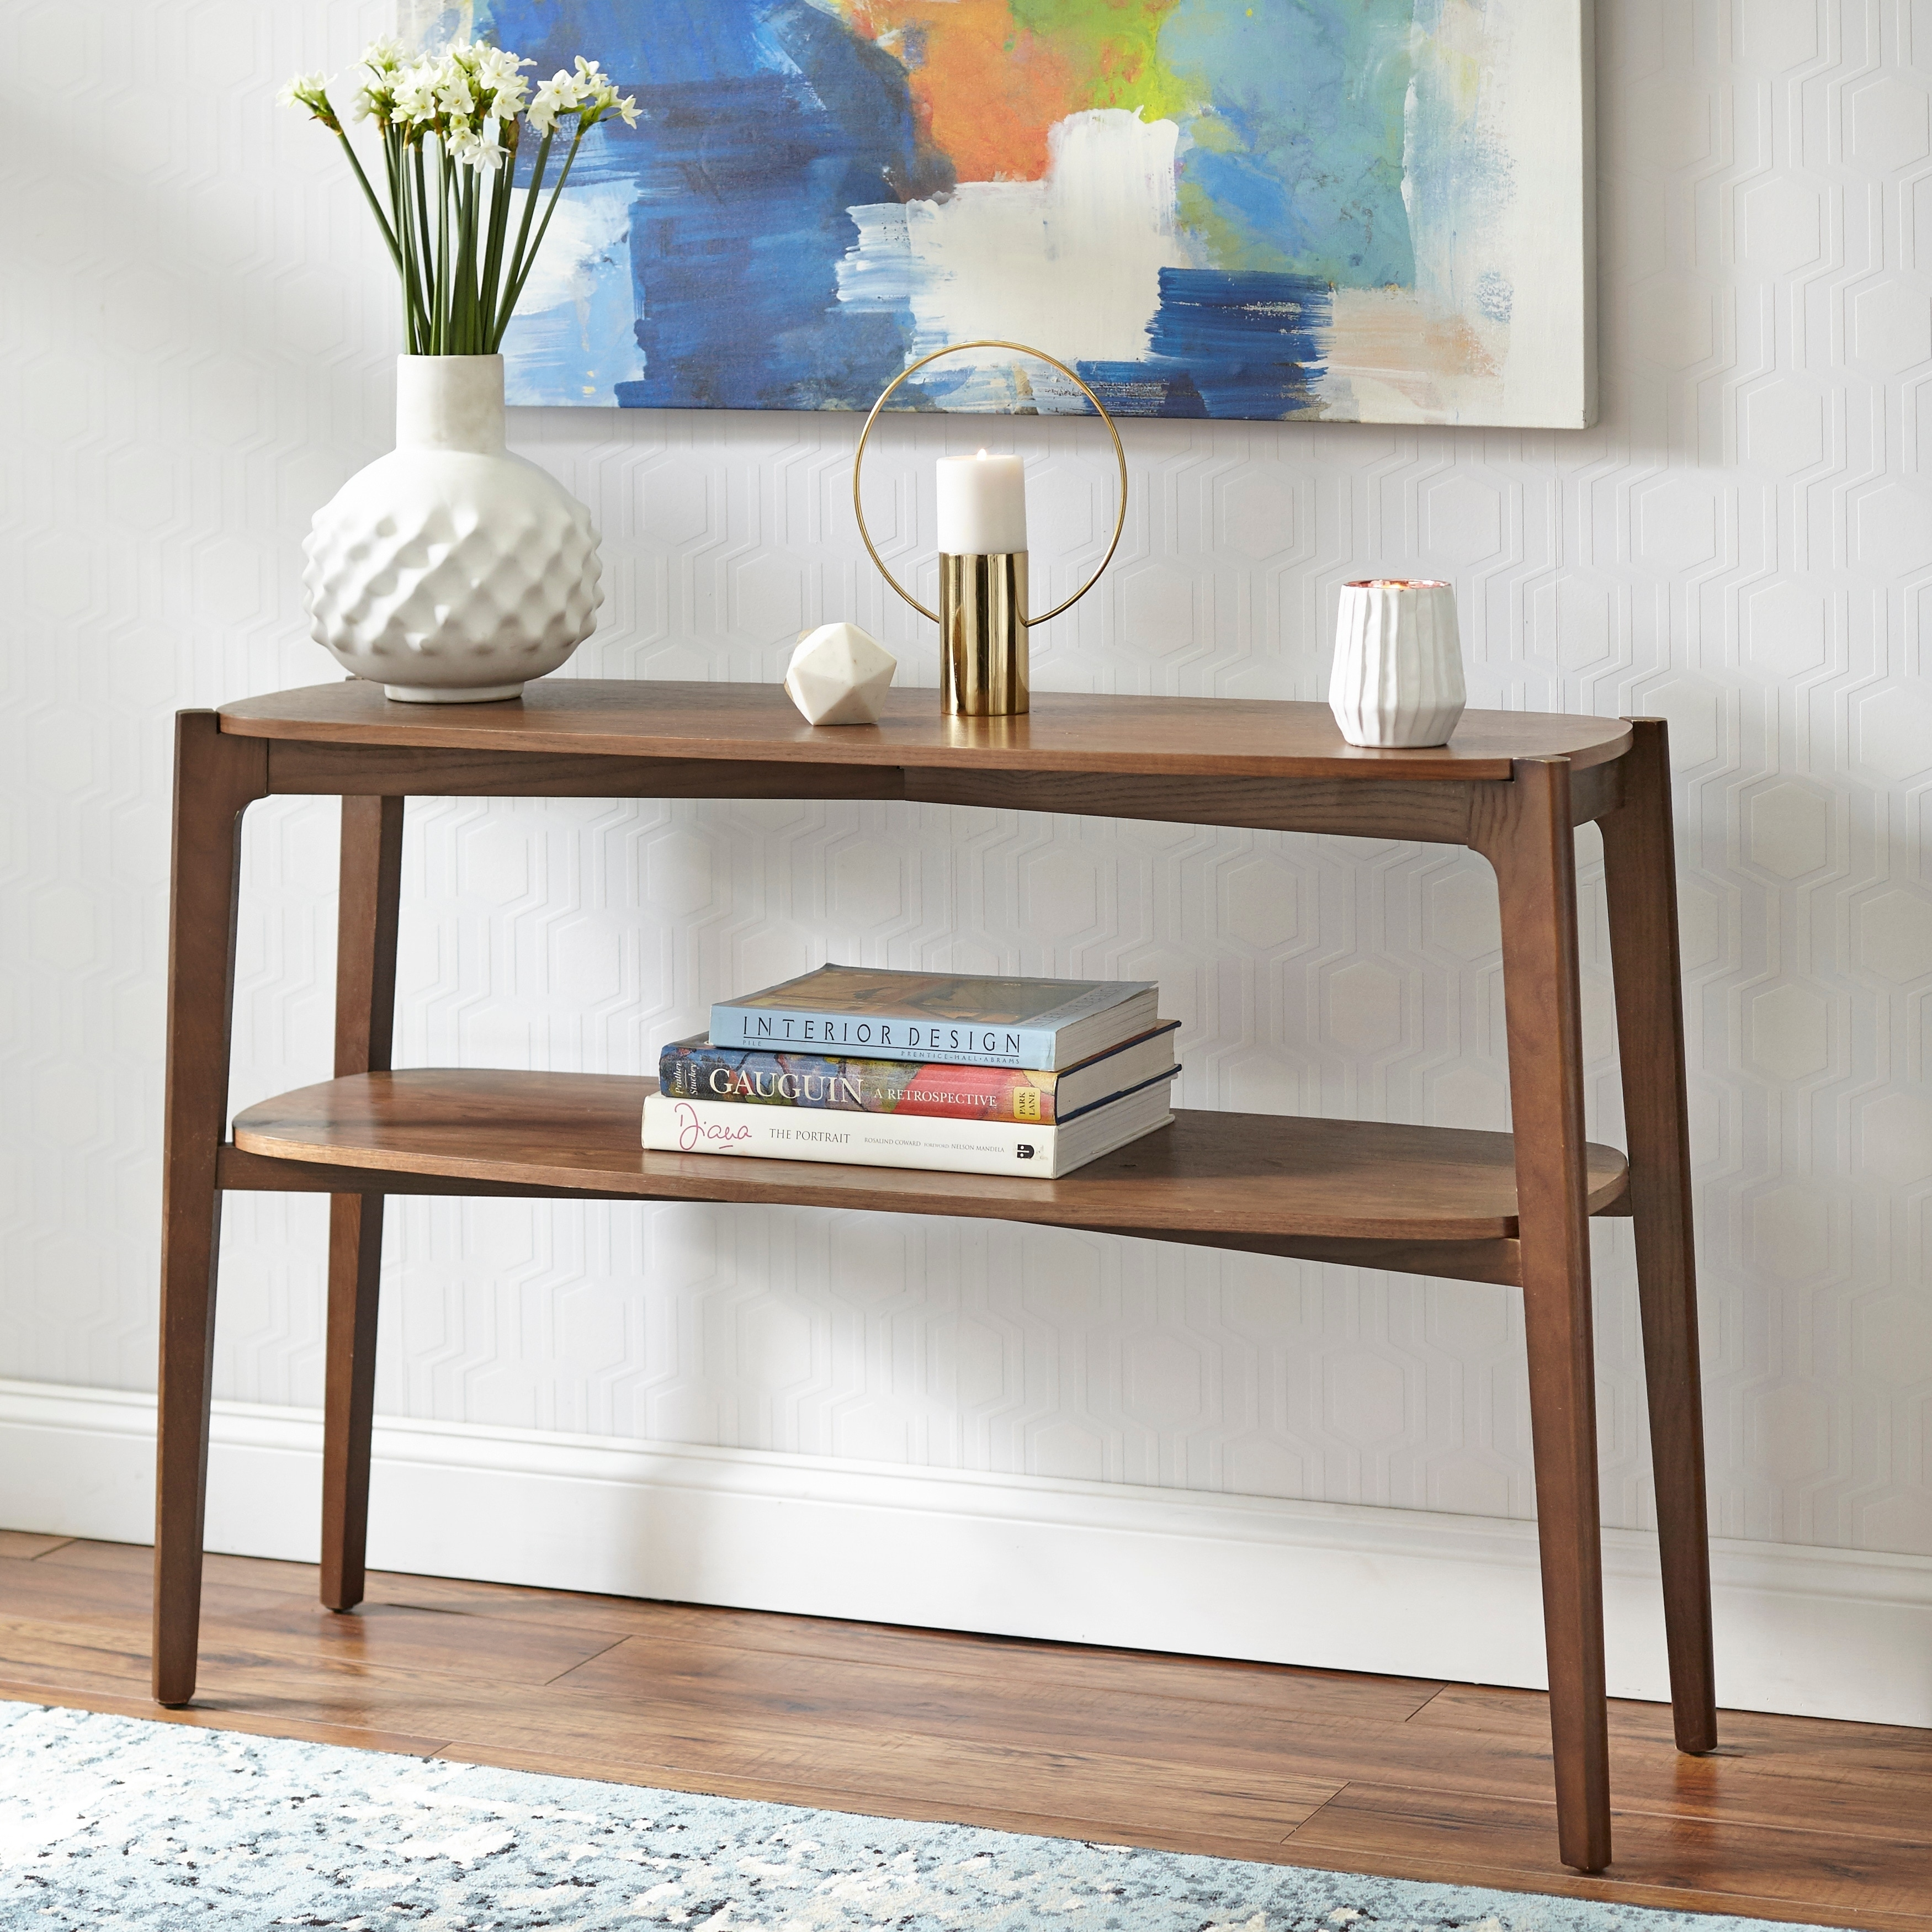 Mid-Century Modern, Console Tables Furniture | Shop our Best ...